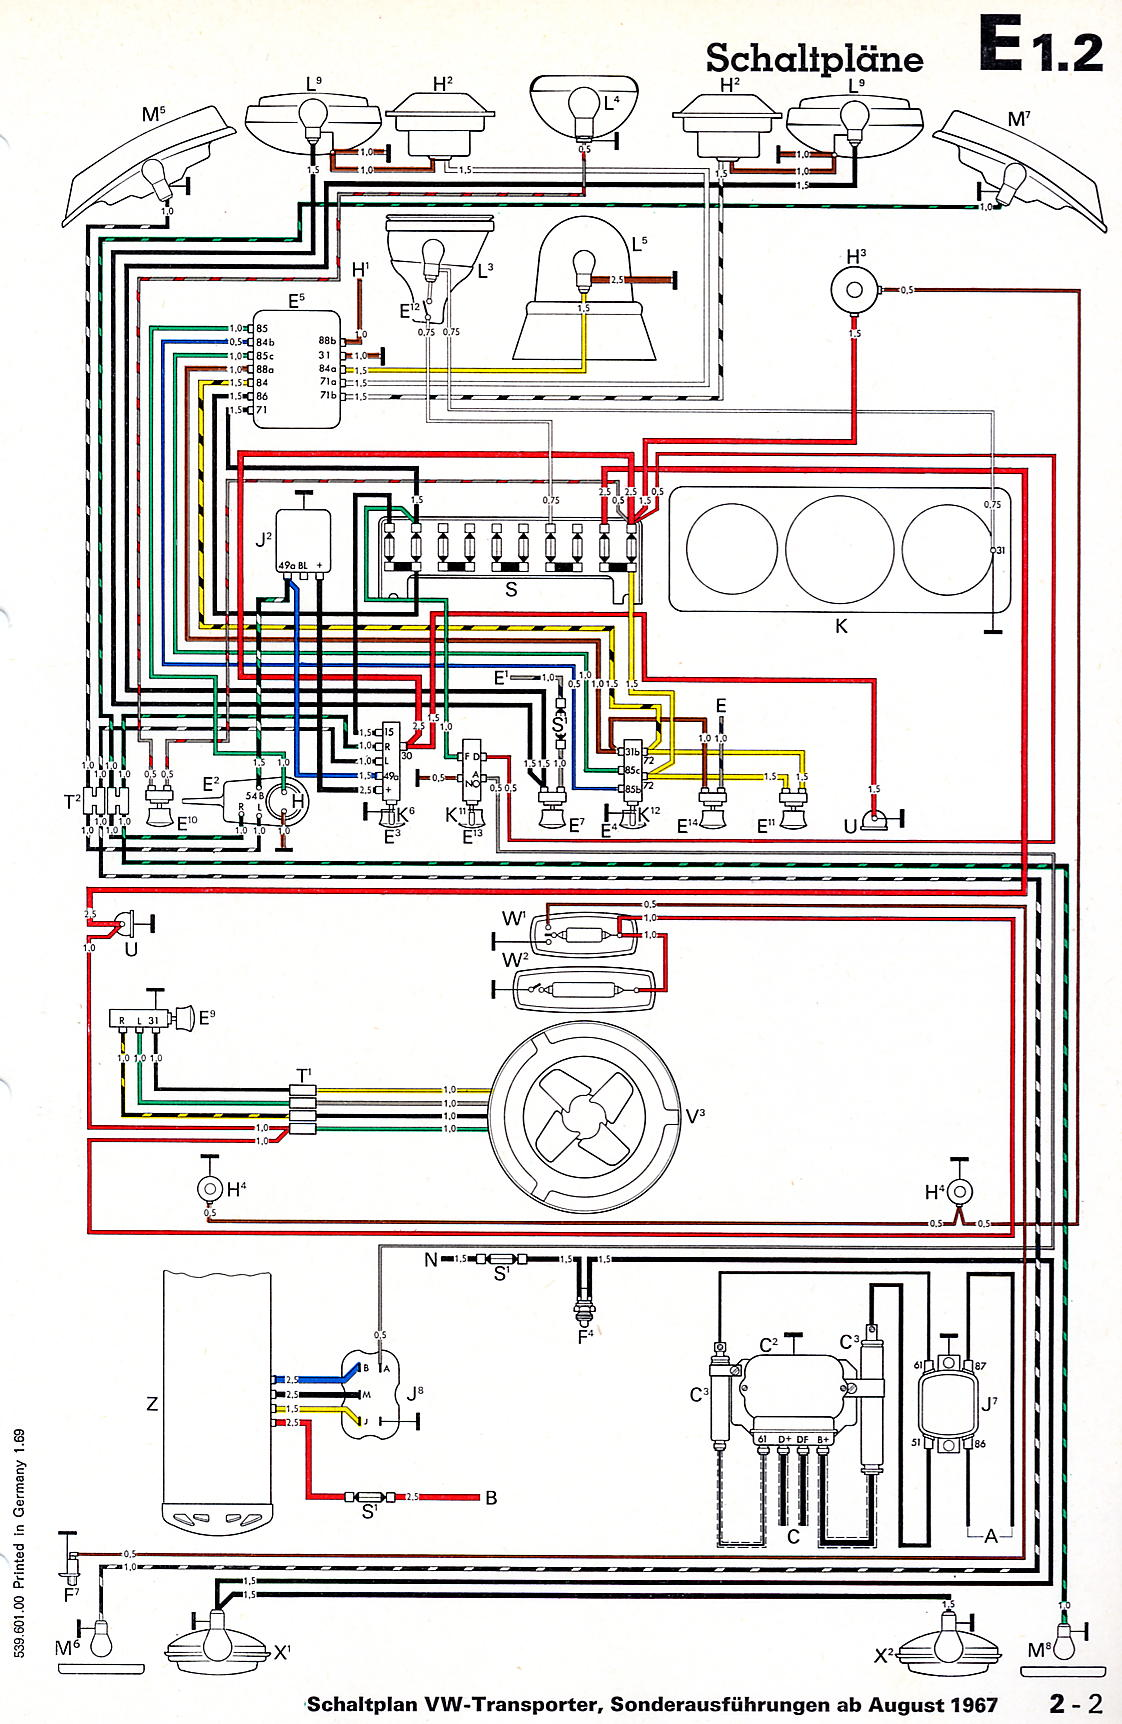 Transporter_from_August_1967_aditional_items vintagebus com vw bus (and other) wiring diagrams vw transporter wiring diagram t5 at edmiracle.co